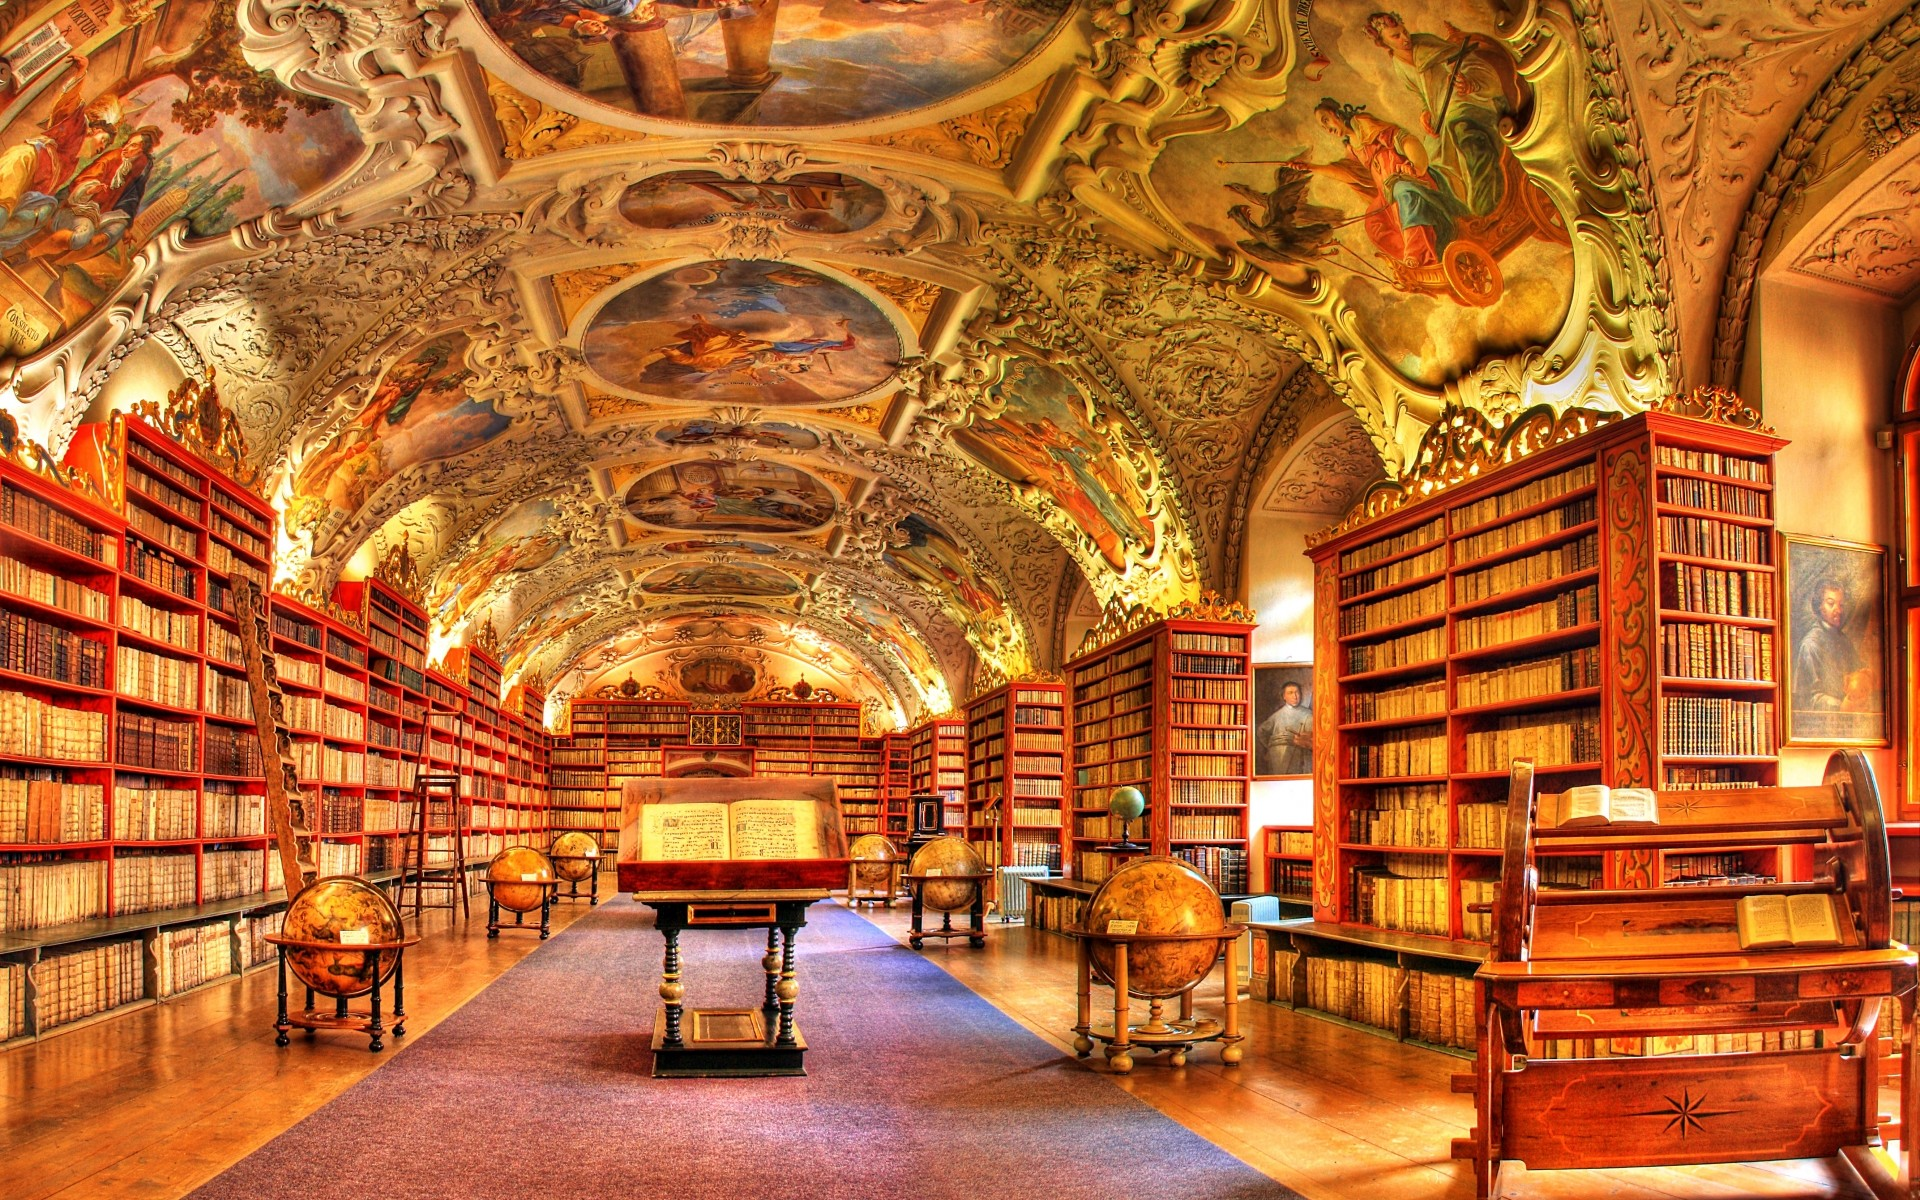 Library Background Images (50+ images)